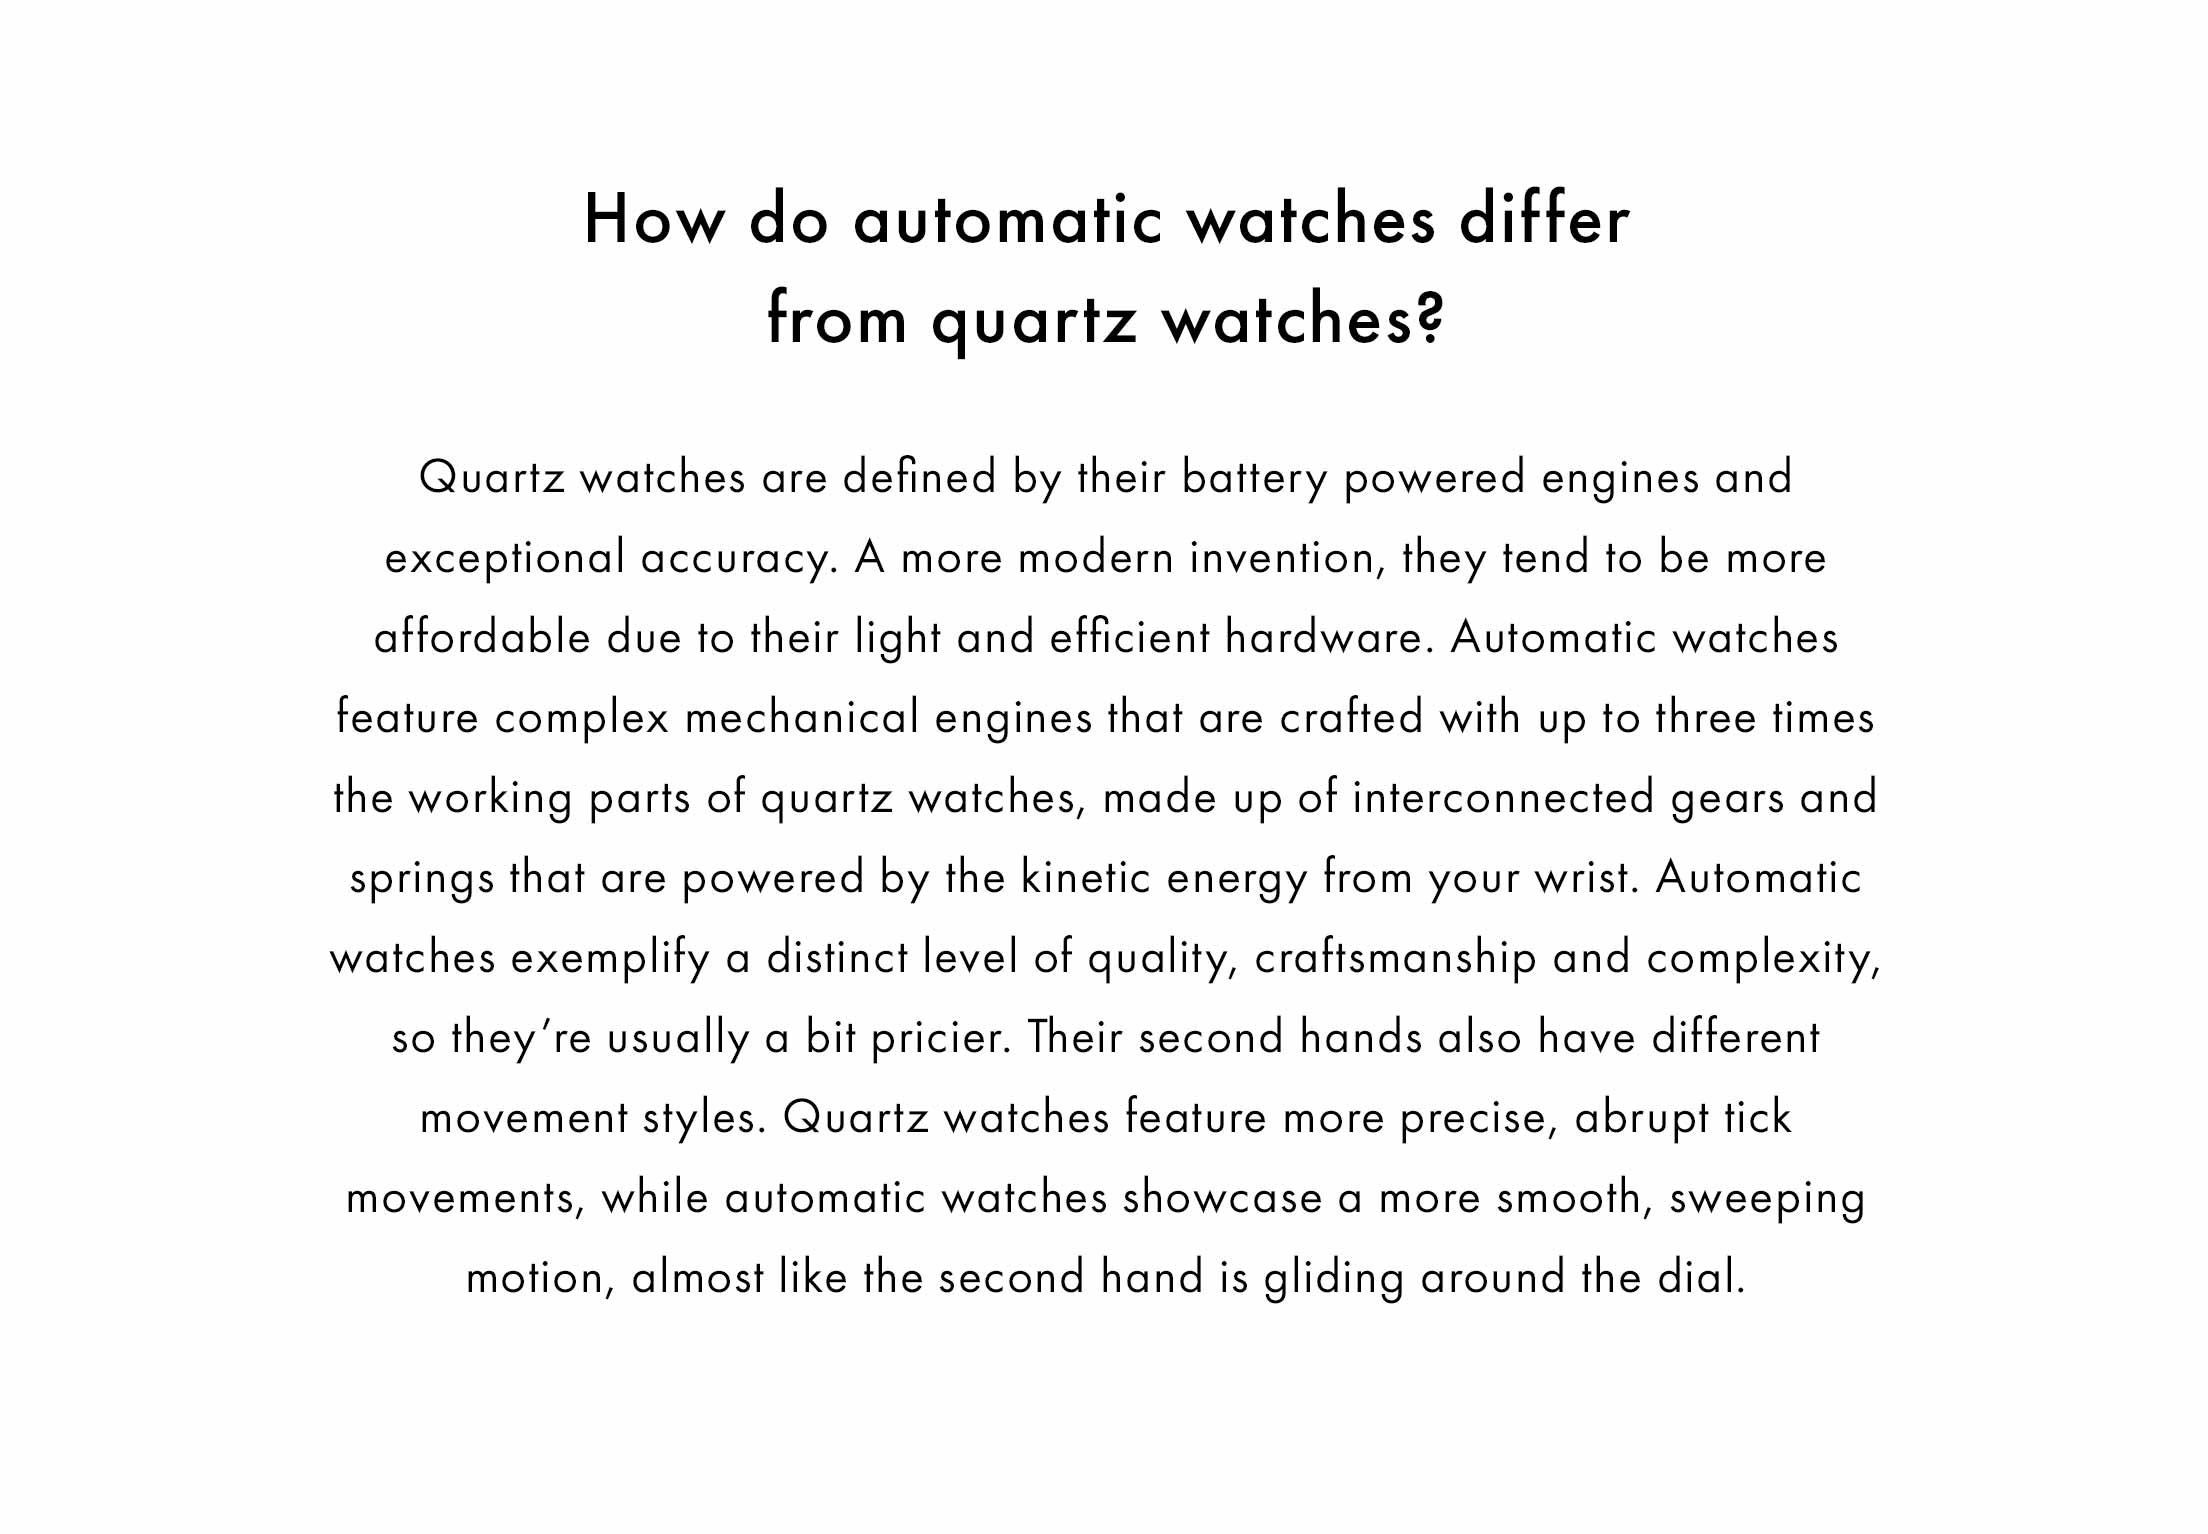 How do automatic watches differ from quartz watches?    Quartz watches are defined by their battery powered engines and exceptional accuracy. A more modern invention, they tend to be more affordable due to their light and efficient hardware. Automatic watches feature complex mechanical engines that are crafted with up to three times the working parts of quartz watches, made up of interconnected gears and springs that are powered by the kinetic energy from your wrist. Automatic watches exemplify a distinct level of quality, craftsmanship and complexity, so they're usually a bit pricier. Their second hands also have different movement styles. Quartz watches feature more precise, abrupt tick movements, while automatic watches showcase a more smooth, sweeping motion, almost like the second hand is gliding around the dial.